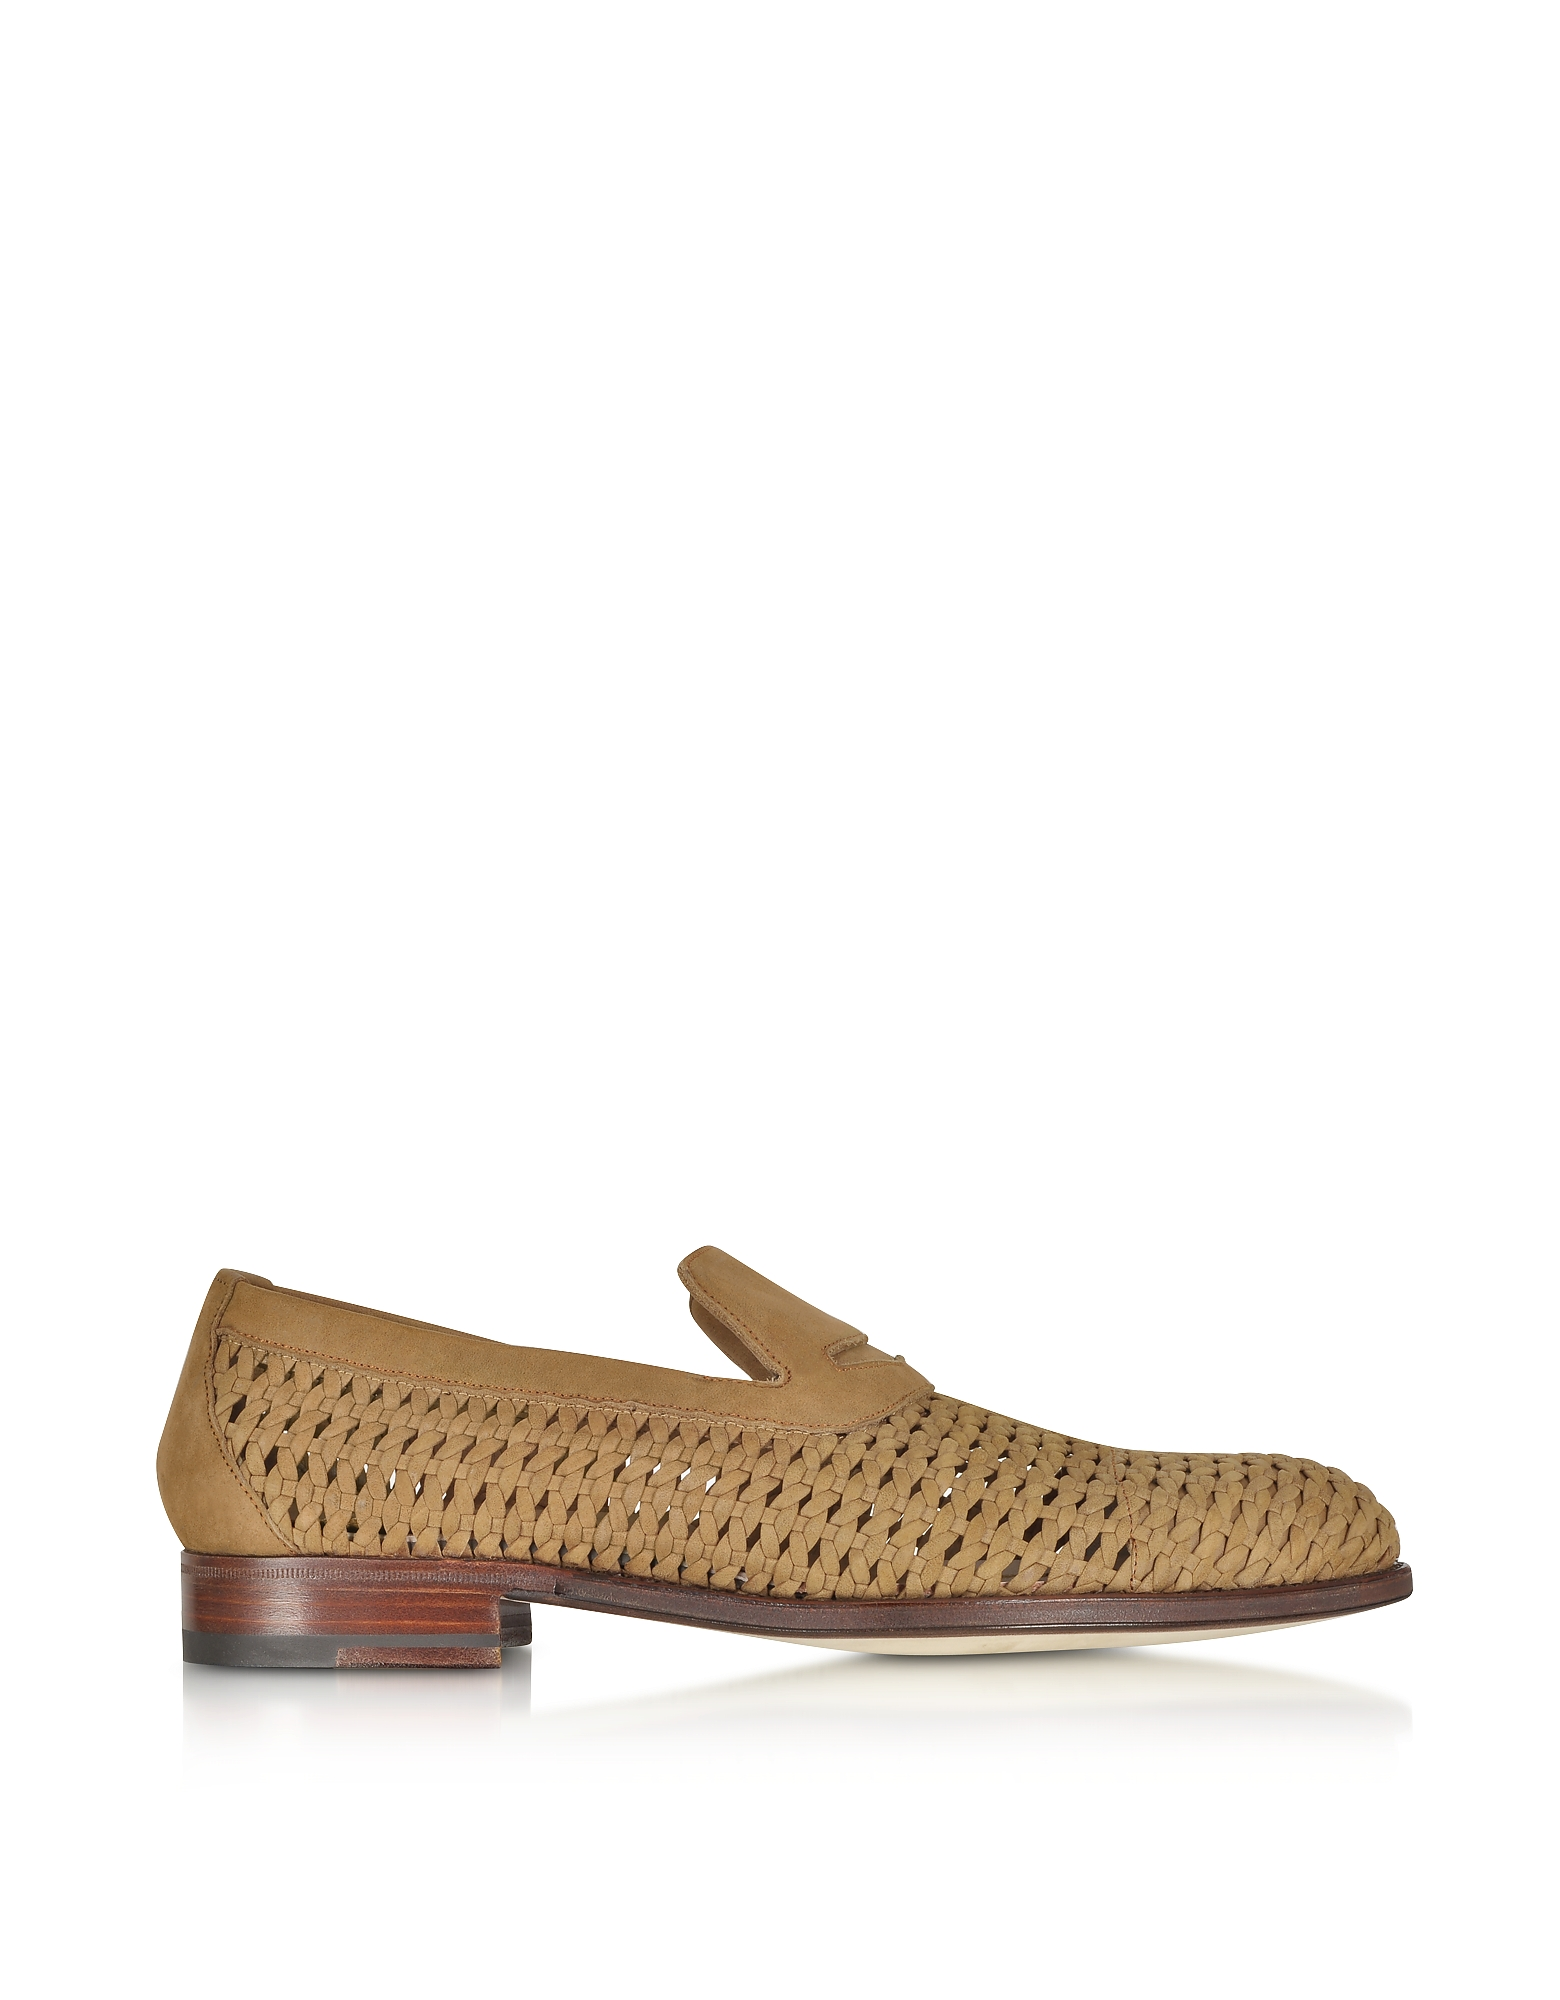 A.Testoni Shoes, Brandy Woven Leather Slip-on Shoe